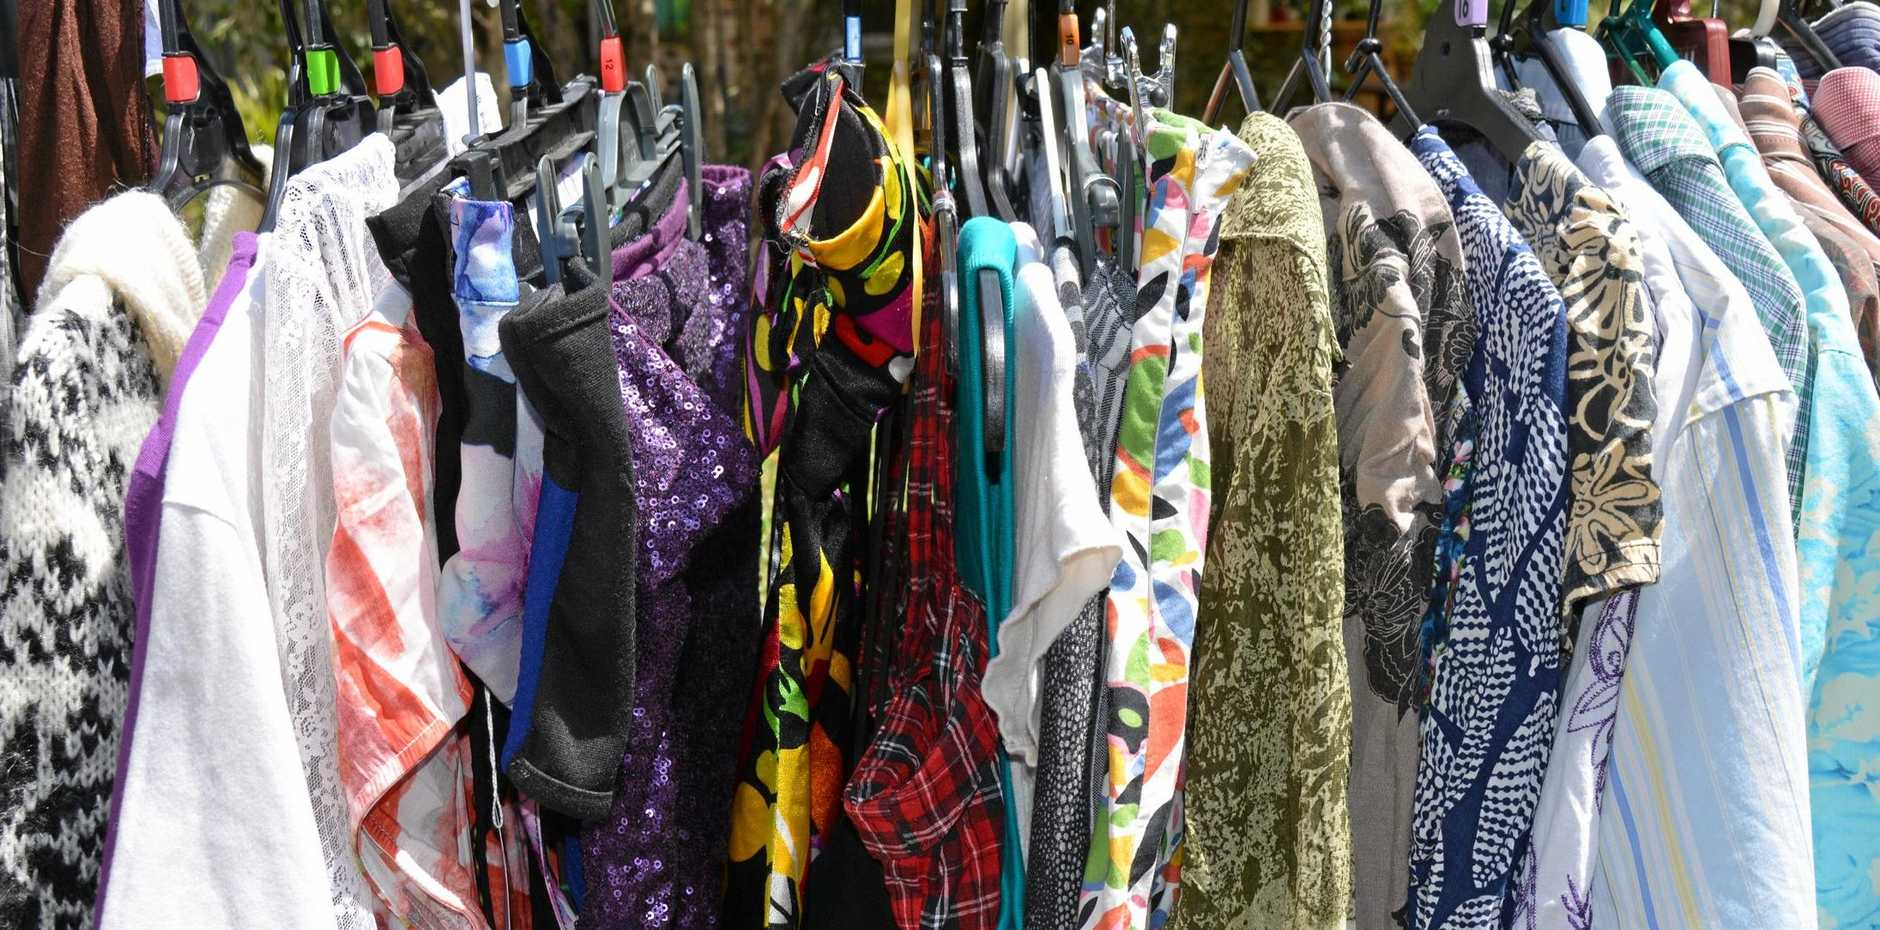 Second hand and new clothes will be for sale at the Mackay Clothes Box market.